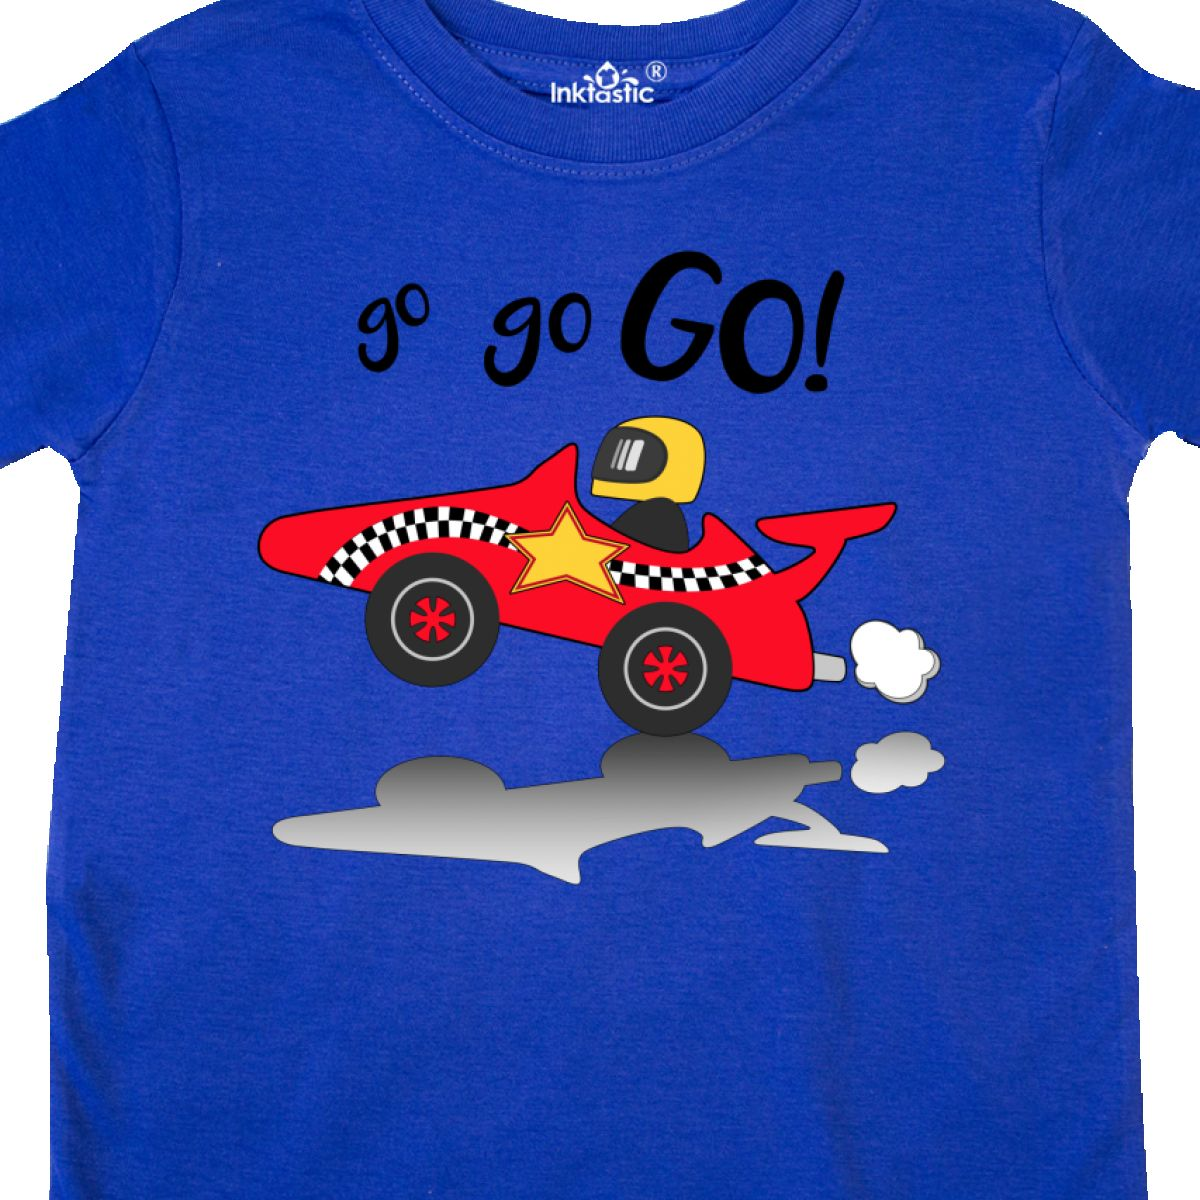 Inktastic-Go-Go-Go-Red-Racing-Car-Toddler-T-Shirt-Cars-Kids-Race-Speed-Driving thumbnail 4